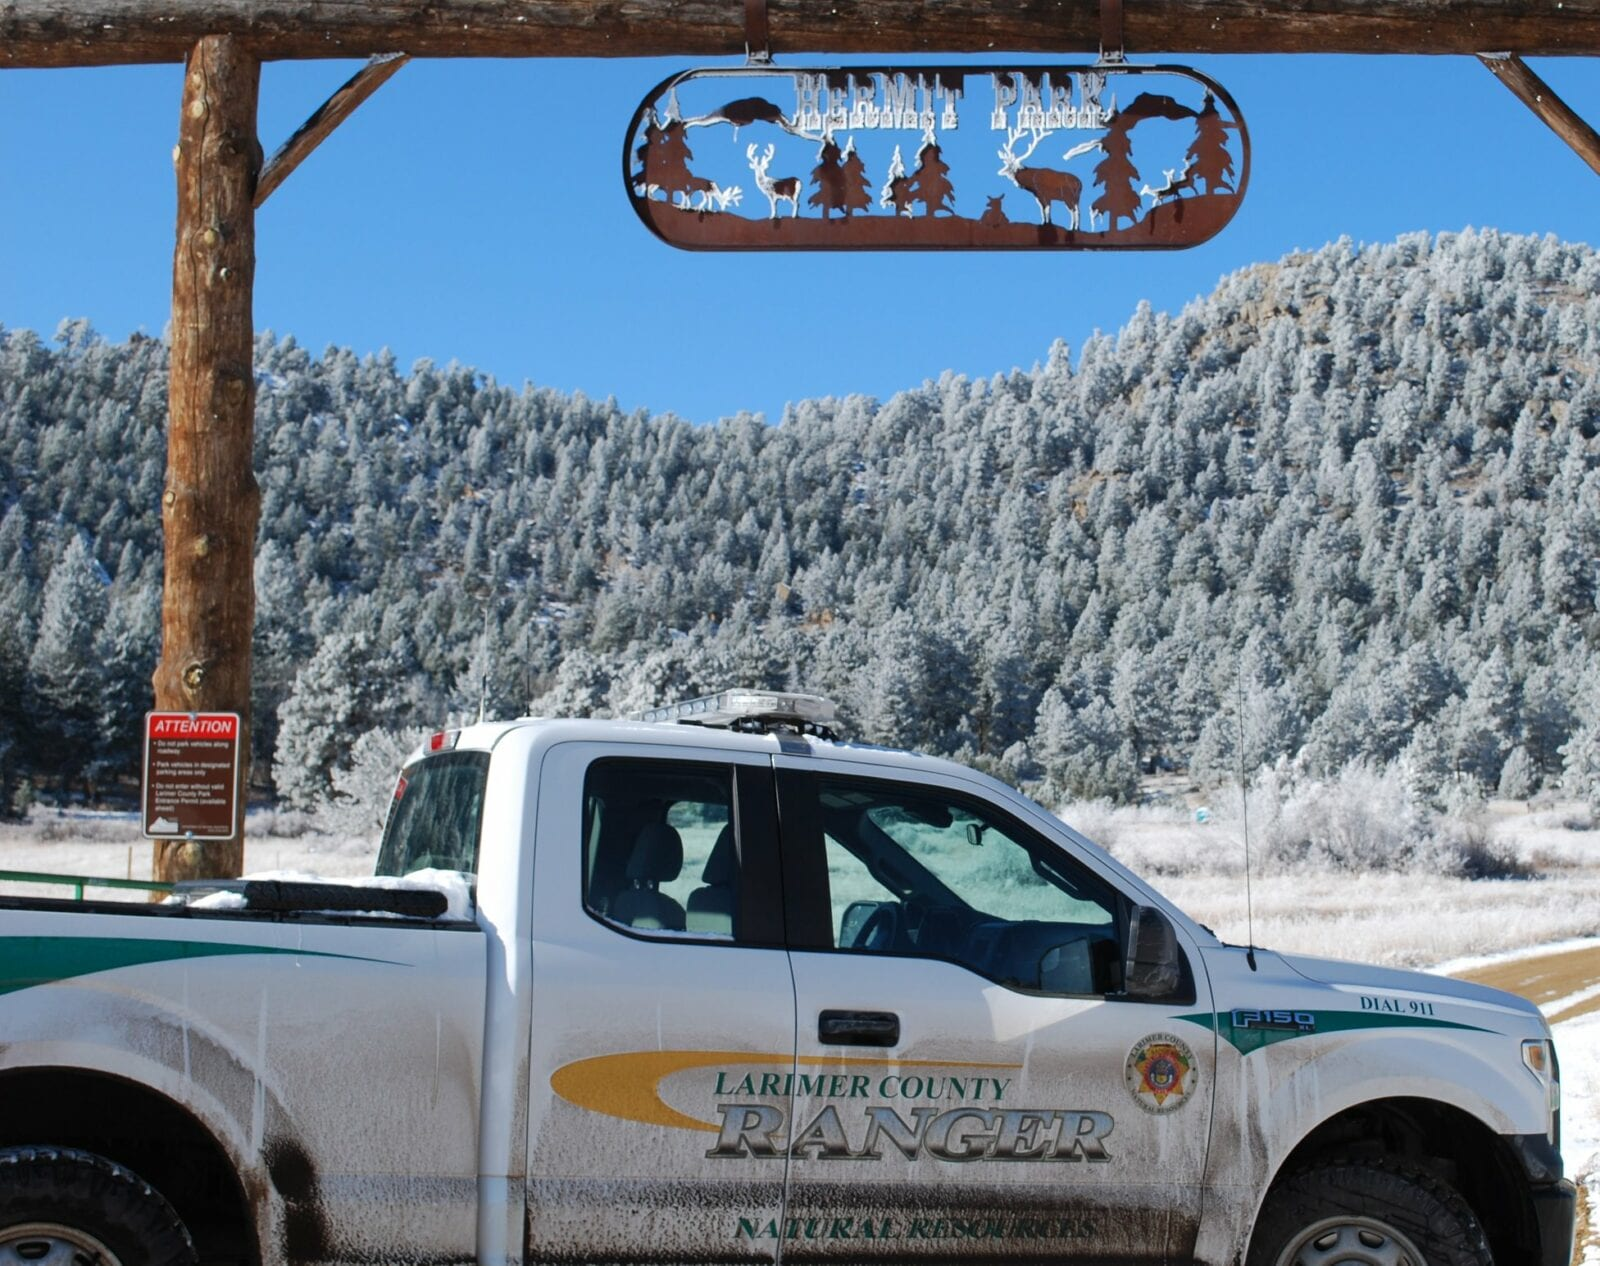 Image of a ranger car in front of the Hermit Park sign in Estes Park, Colorado